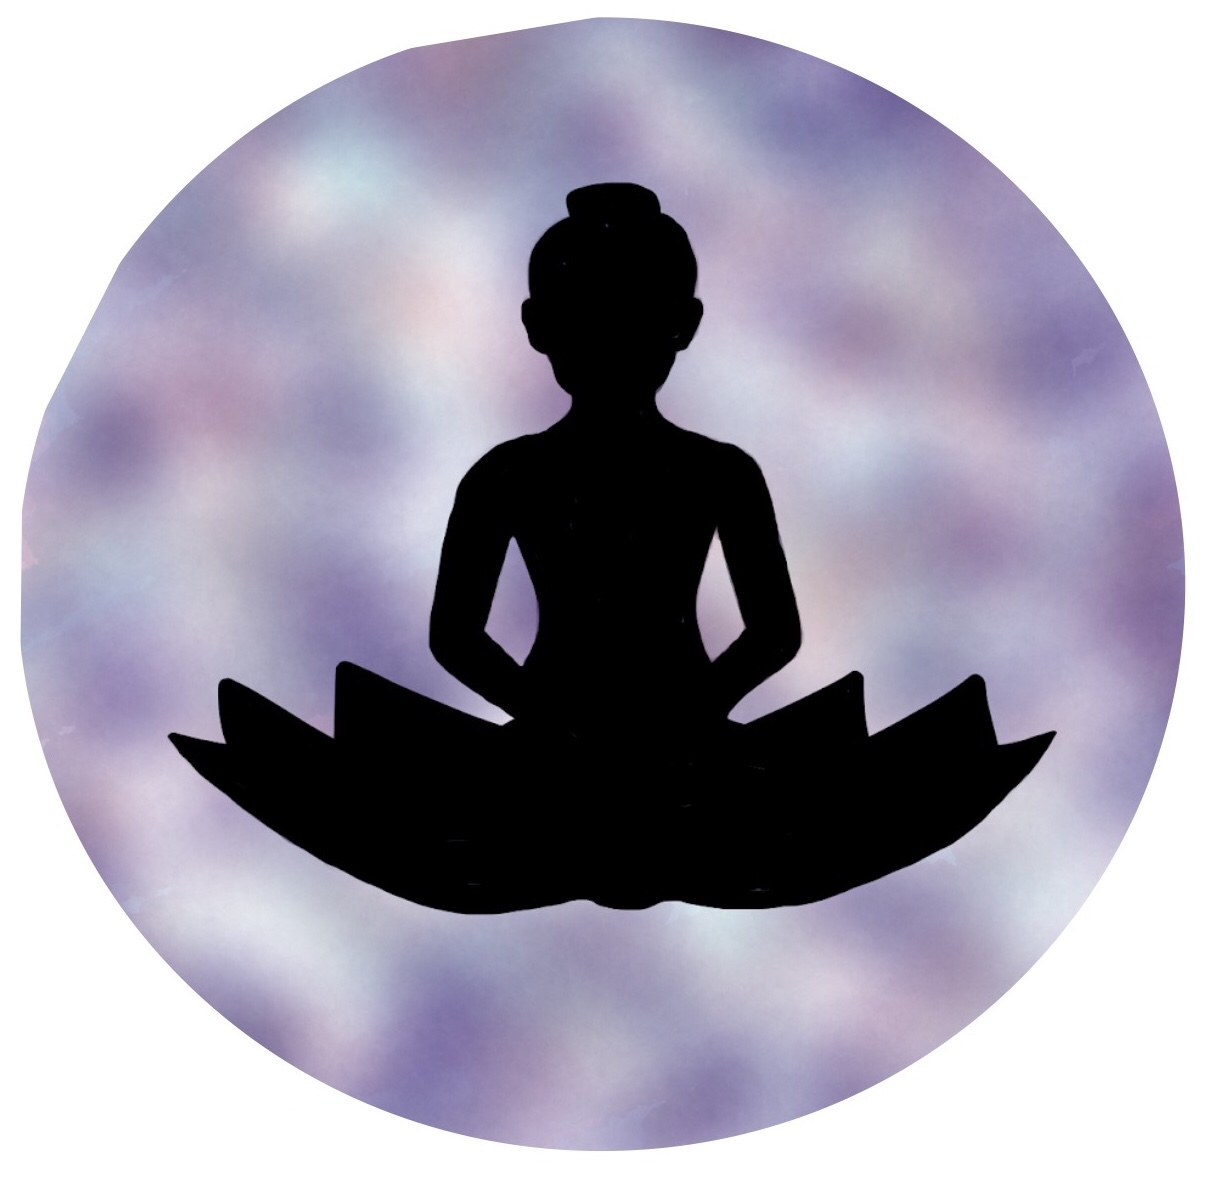 Gentle Yoga for Every Body - Duration: 30-minutes, 45-minutes or 60-minutesThis is a yoga practice of gentle flowing postures that will warm and open the body and quiet the mind. Wear comfortable, loose fitting clothing. Beginners are welcome. Yoga mats will be provided for a limited number of participants.